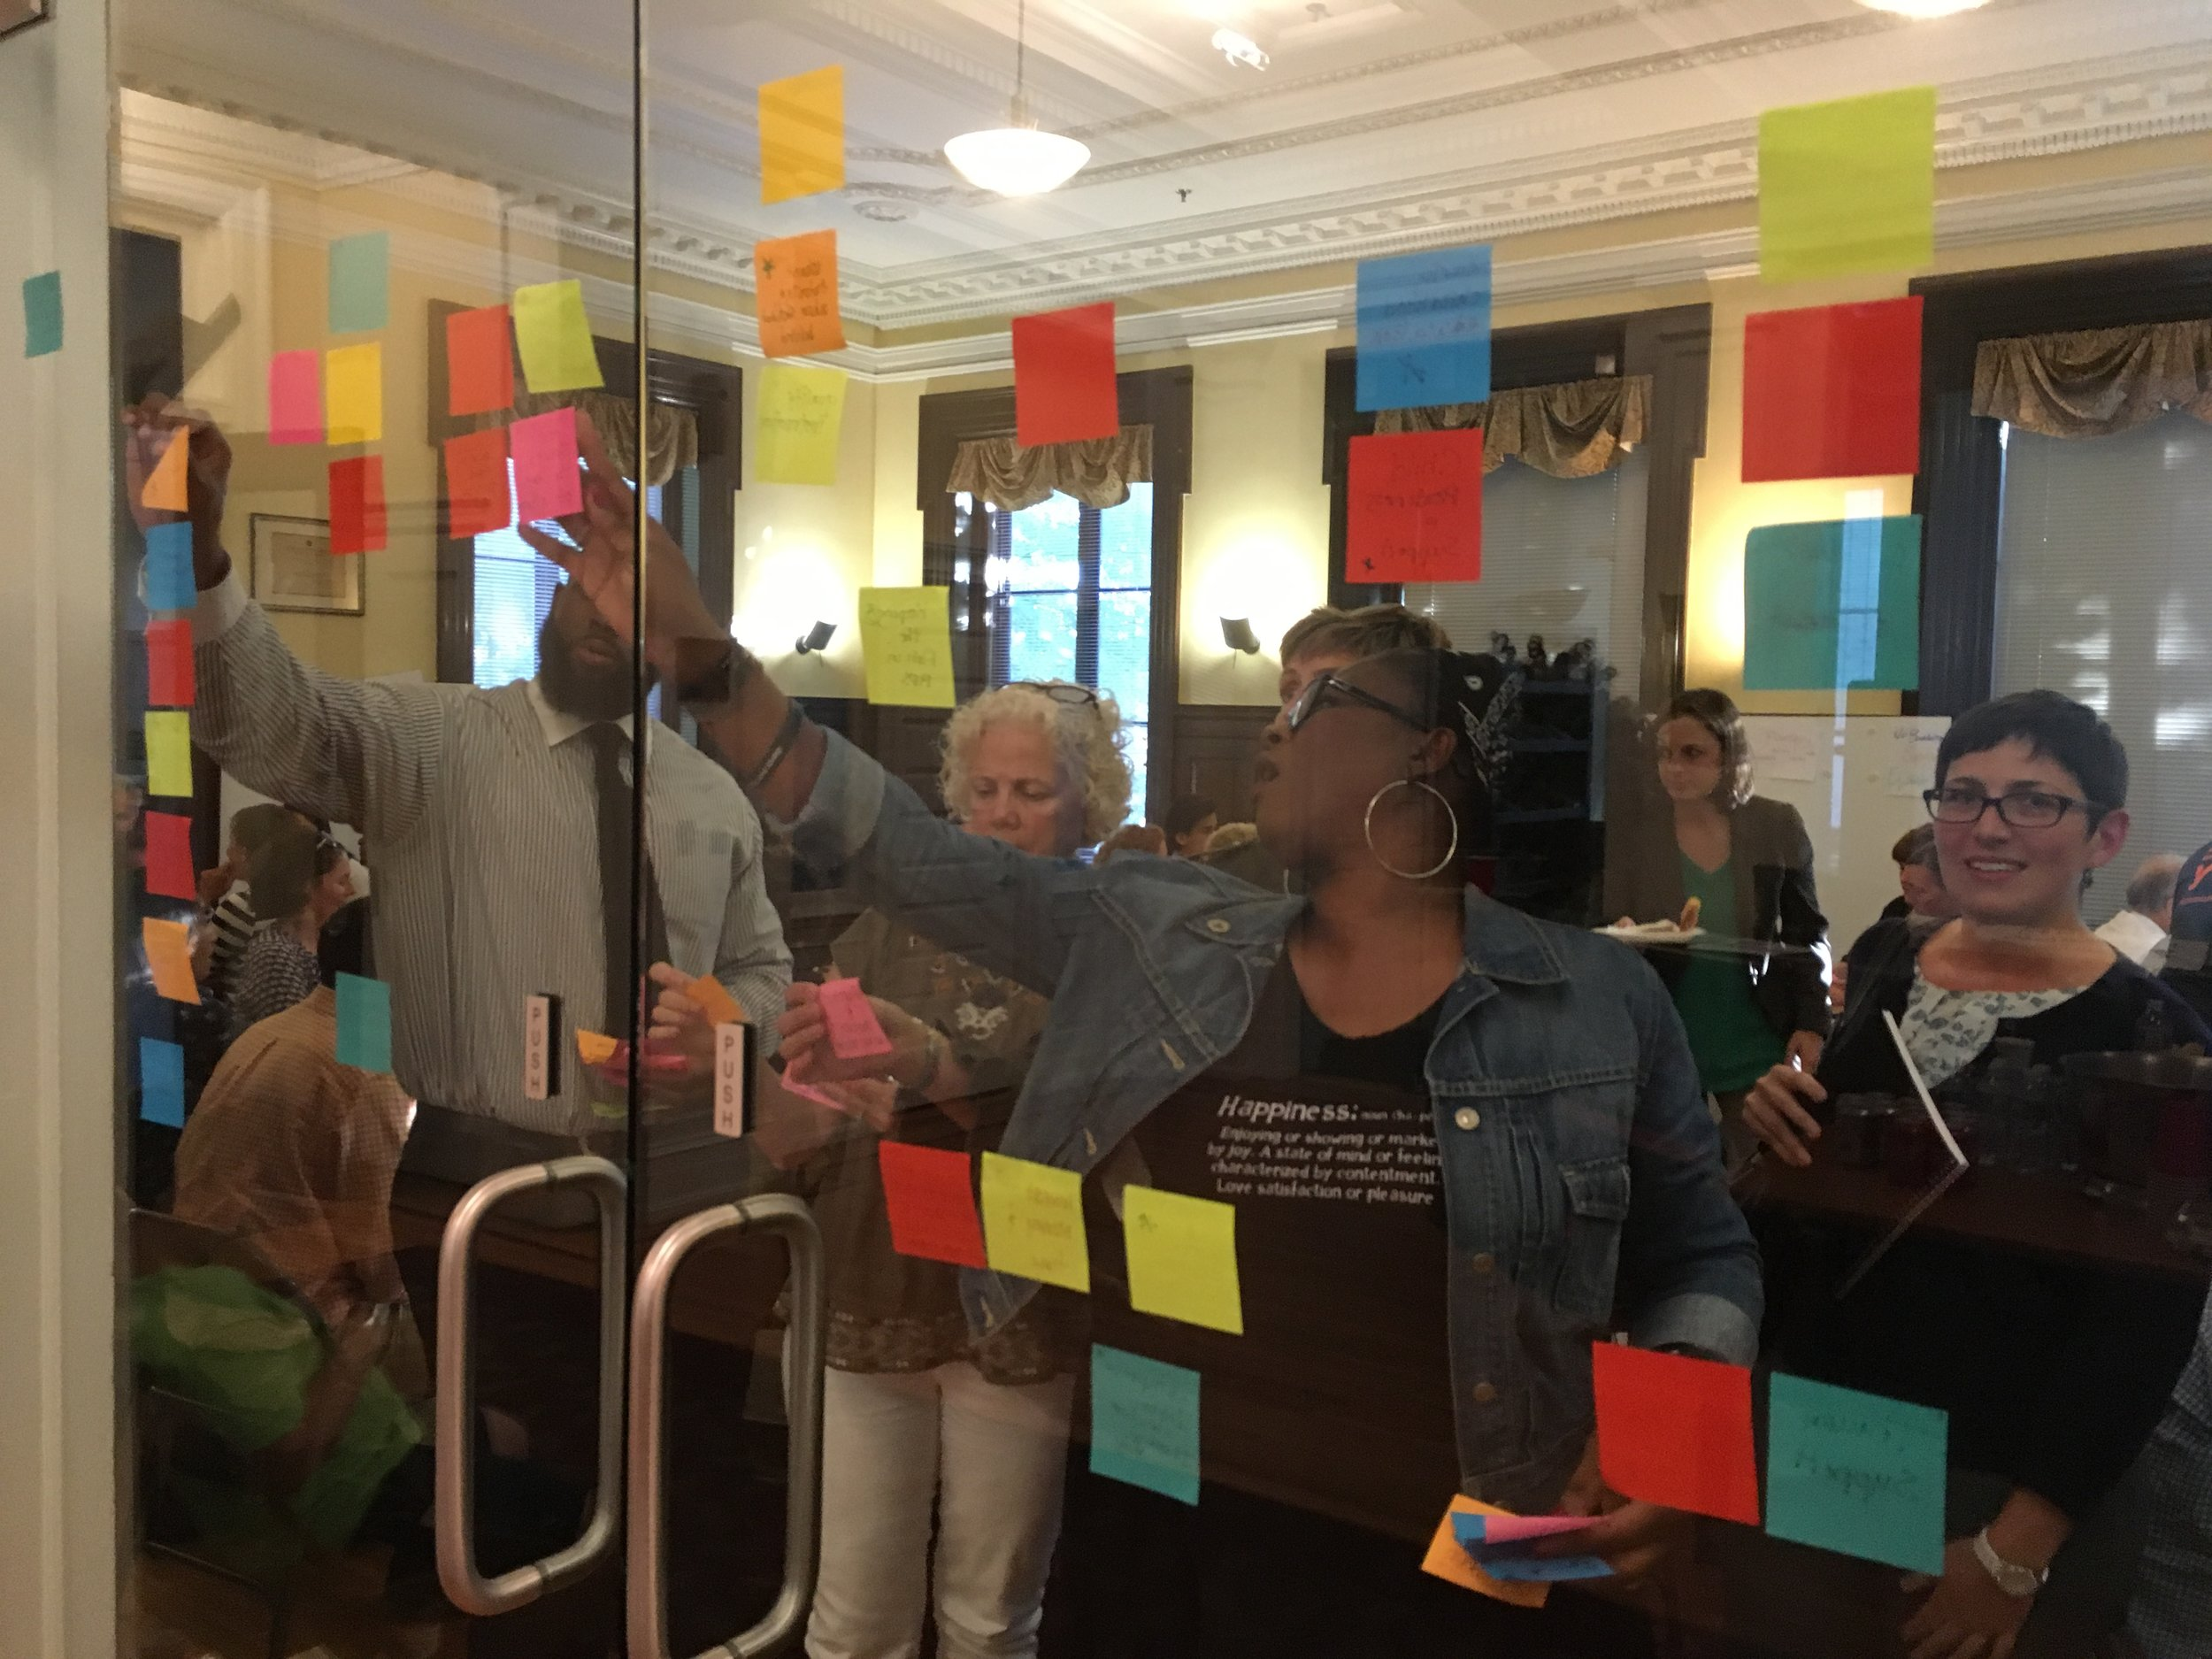 On October 3rd, over 60 people attended the first Thriving Richmond event.